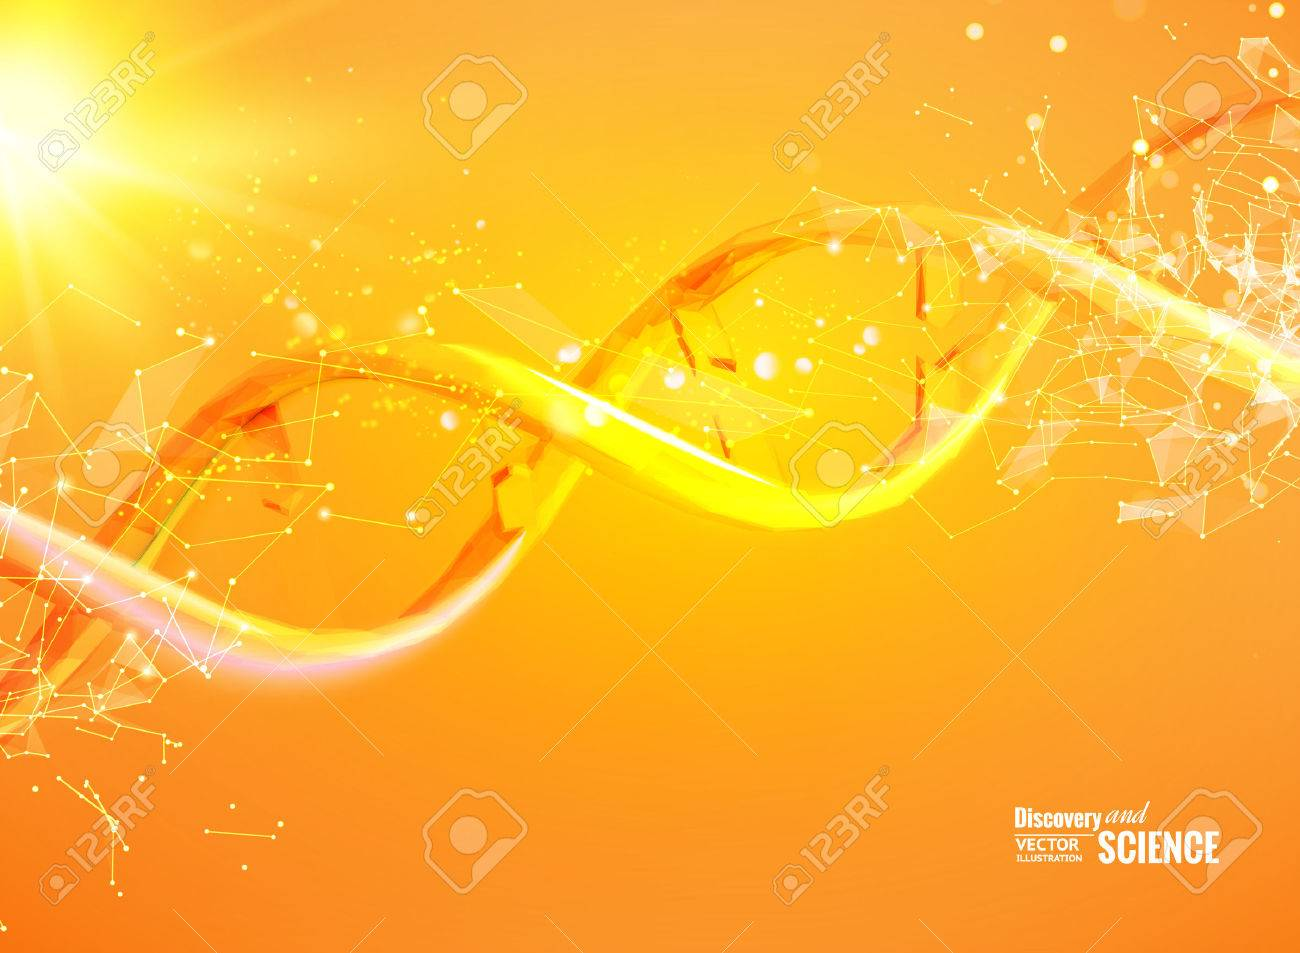 Science Template For Your Card Orange Wallpaper Or Banner With